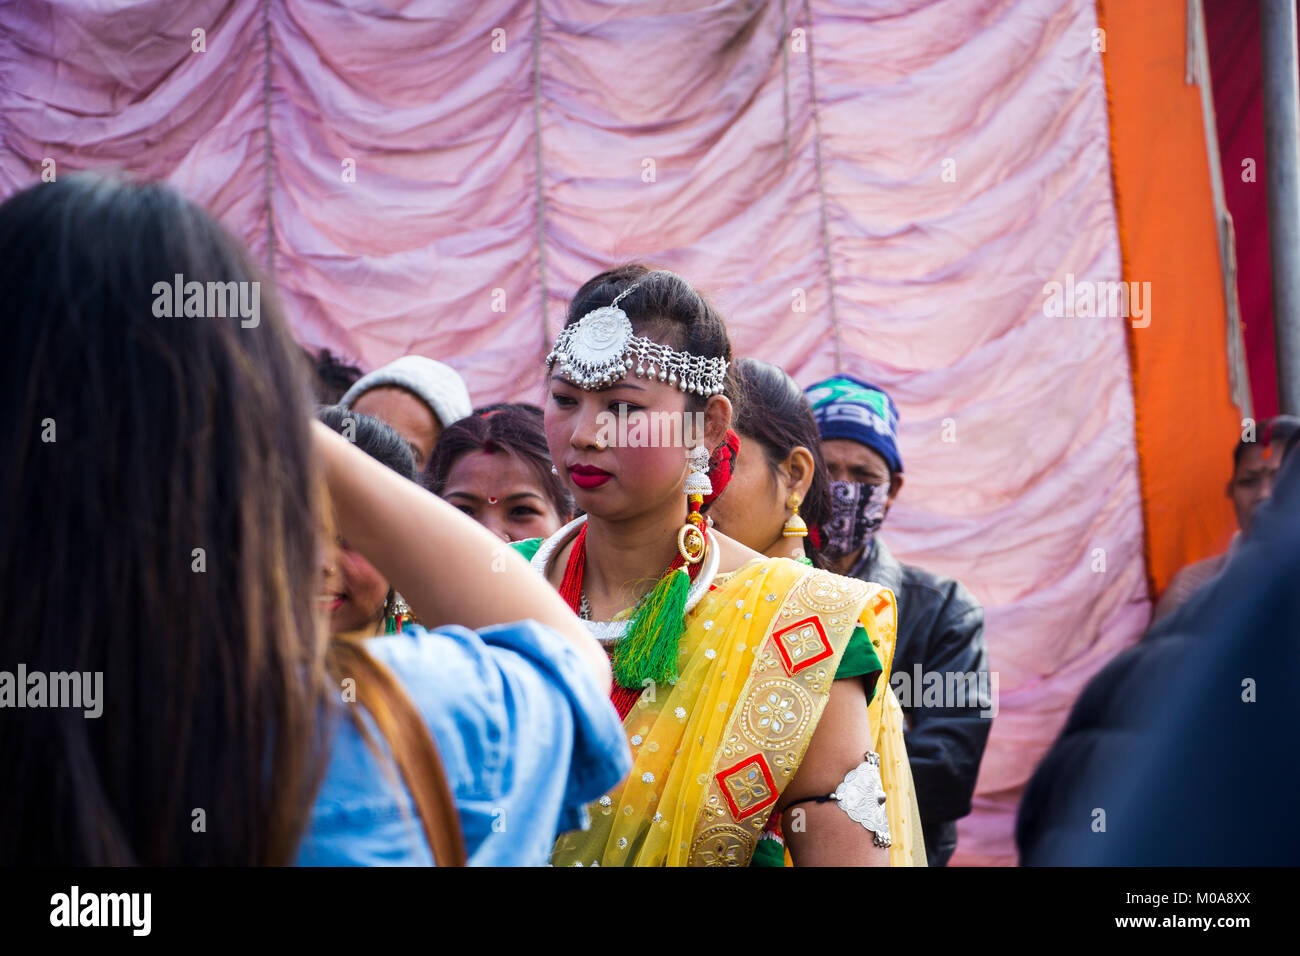 Noemie Repetto / Le Pictorium -  2018, Jan 15 - Maghi festival. New Year of Nepal in Tundikhel through the day. Stock Photo